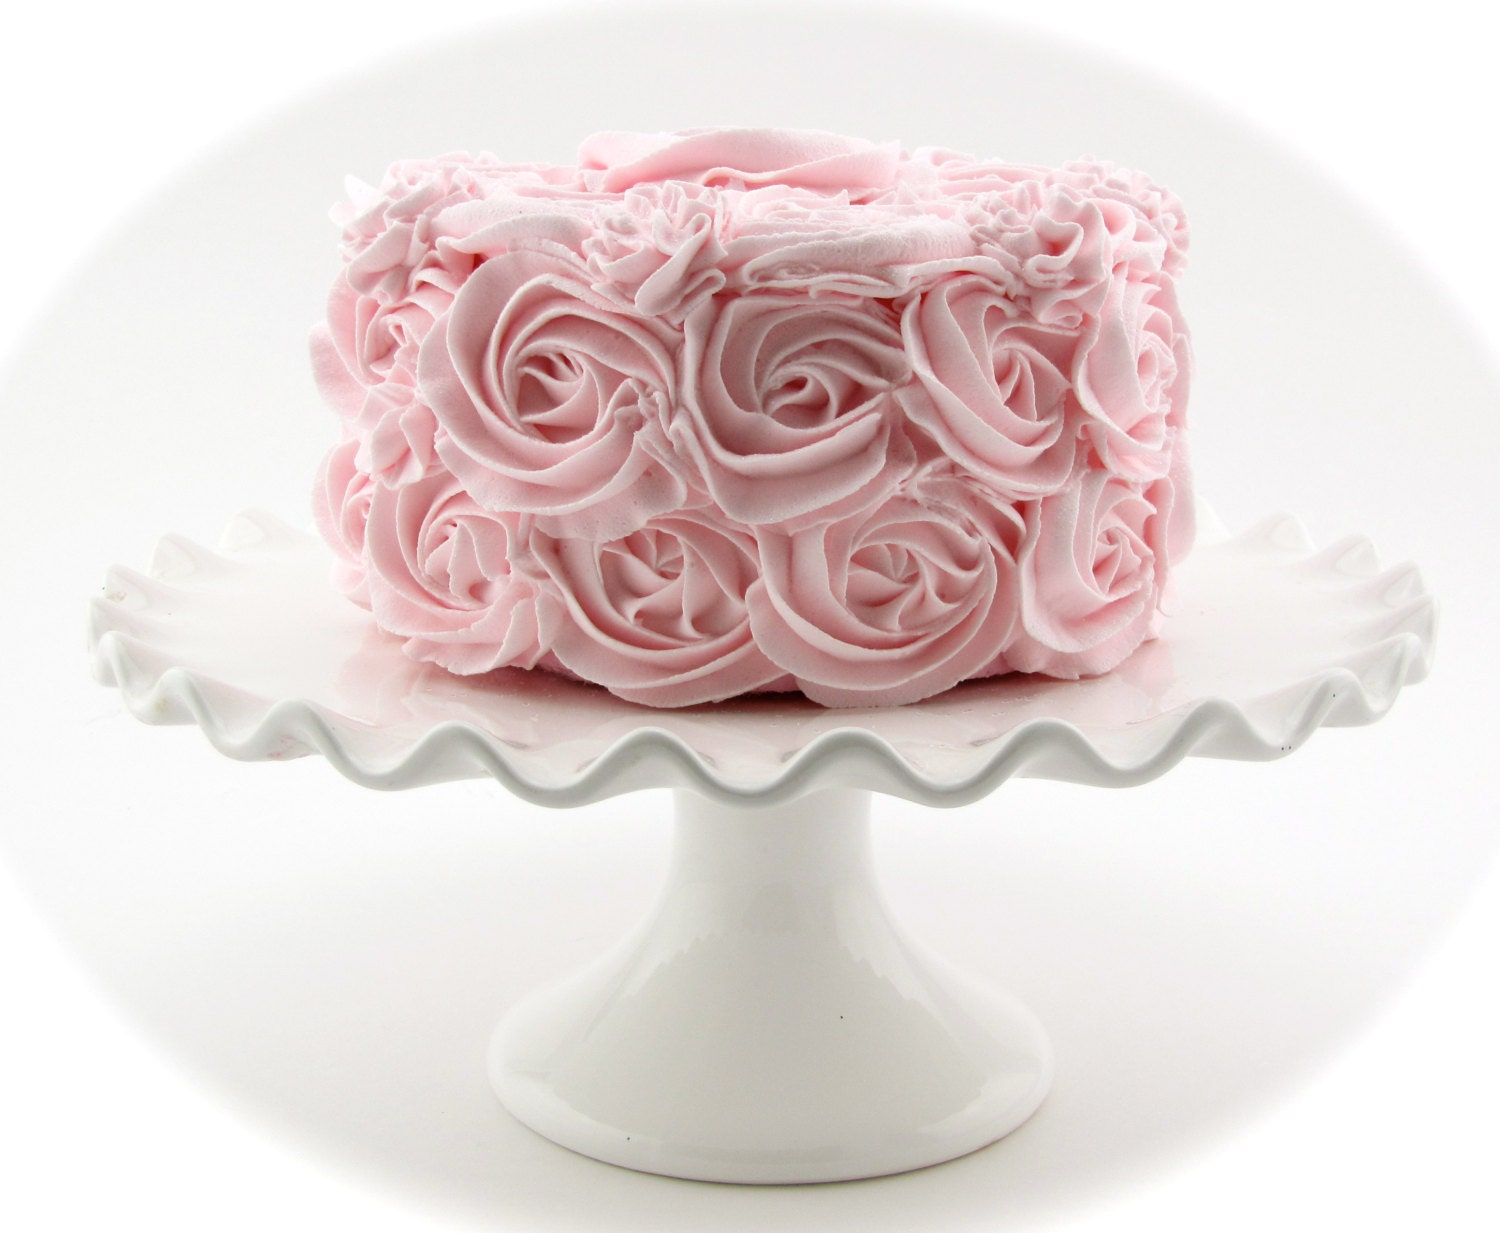 Rosette Fake Cake Pink Frosting Approx 675w X 4h